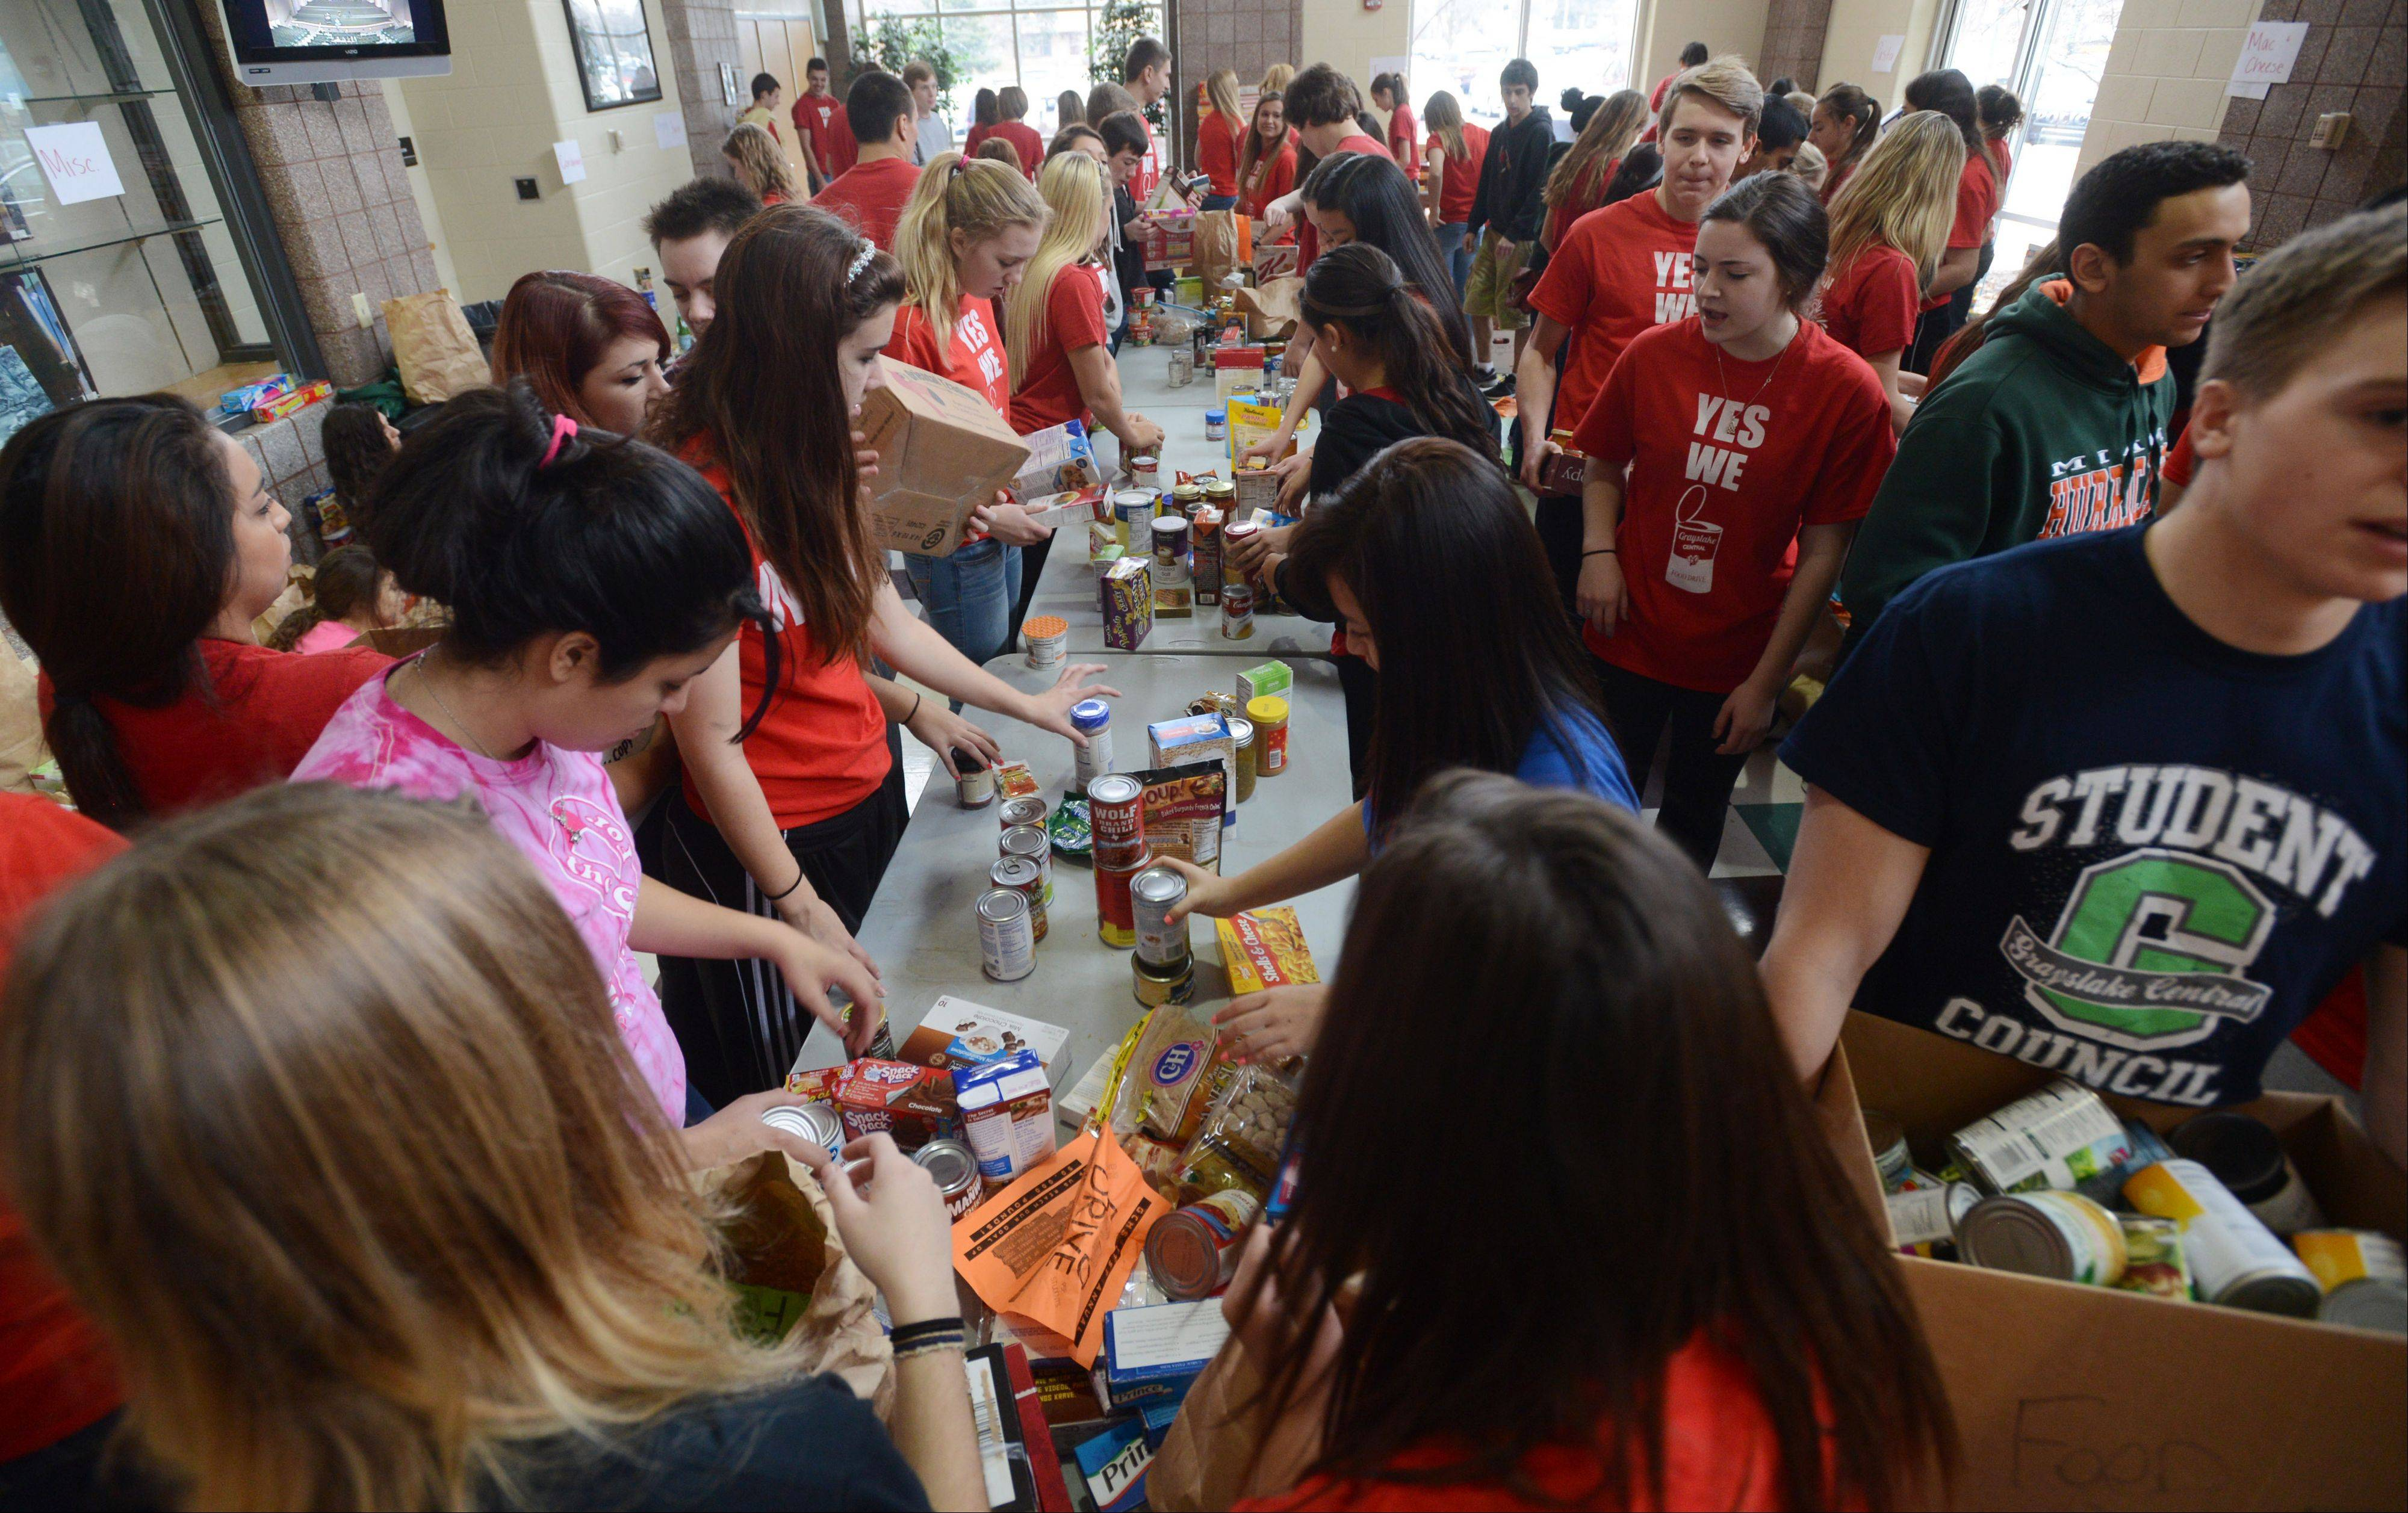 Students from the Grayslake Central High School's student council and public service practicum packaged up 50,000 pounds of food on Friday for their 21st Annual Food Drive.